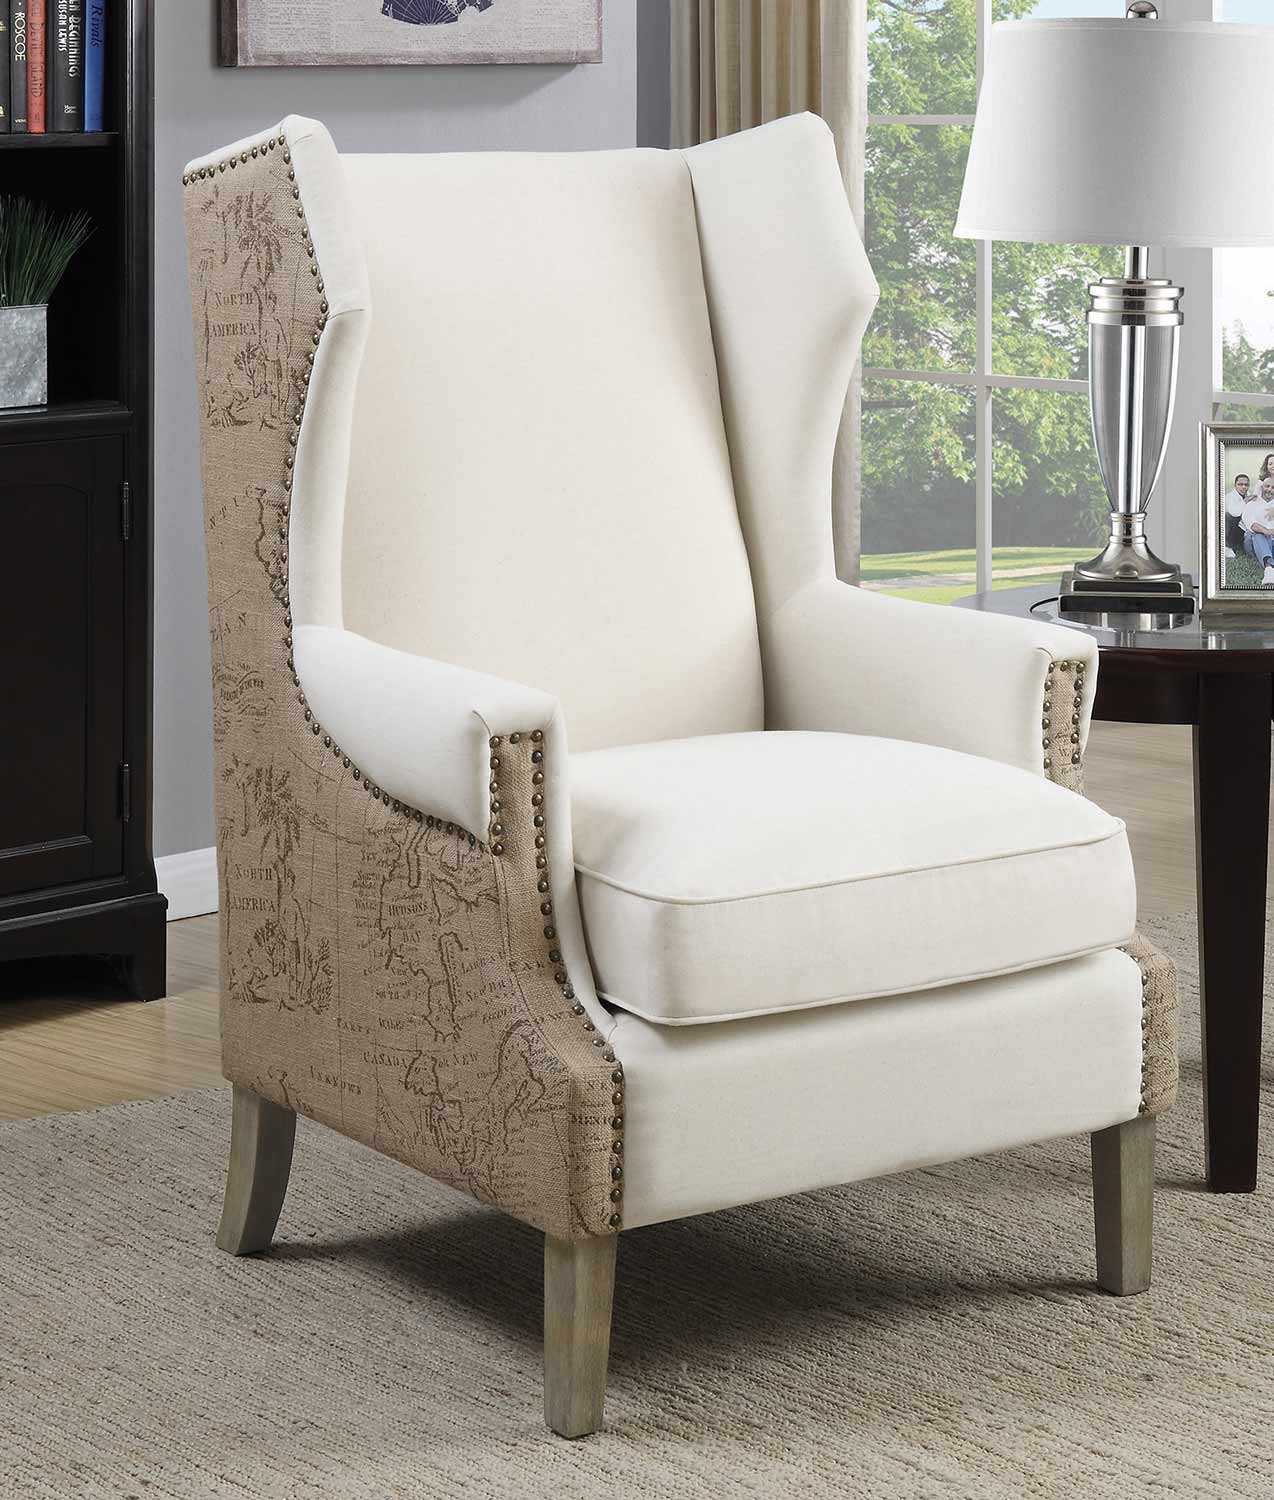 Coaster 902491 Accent Chair - Cream